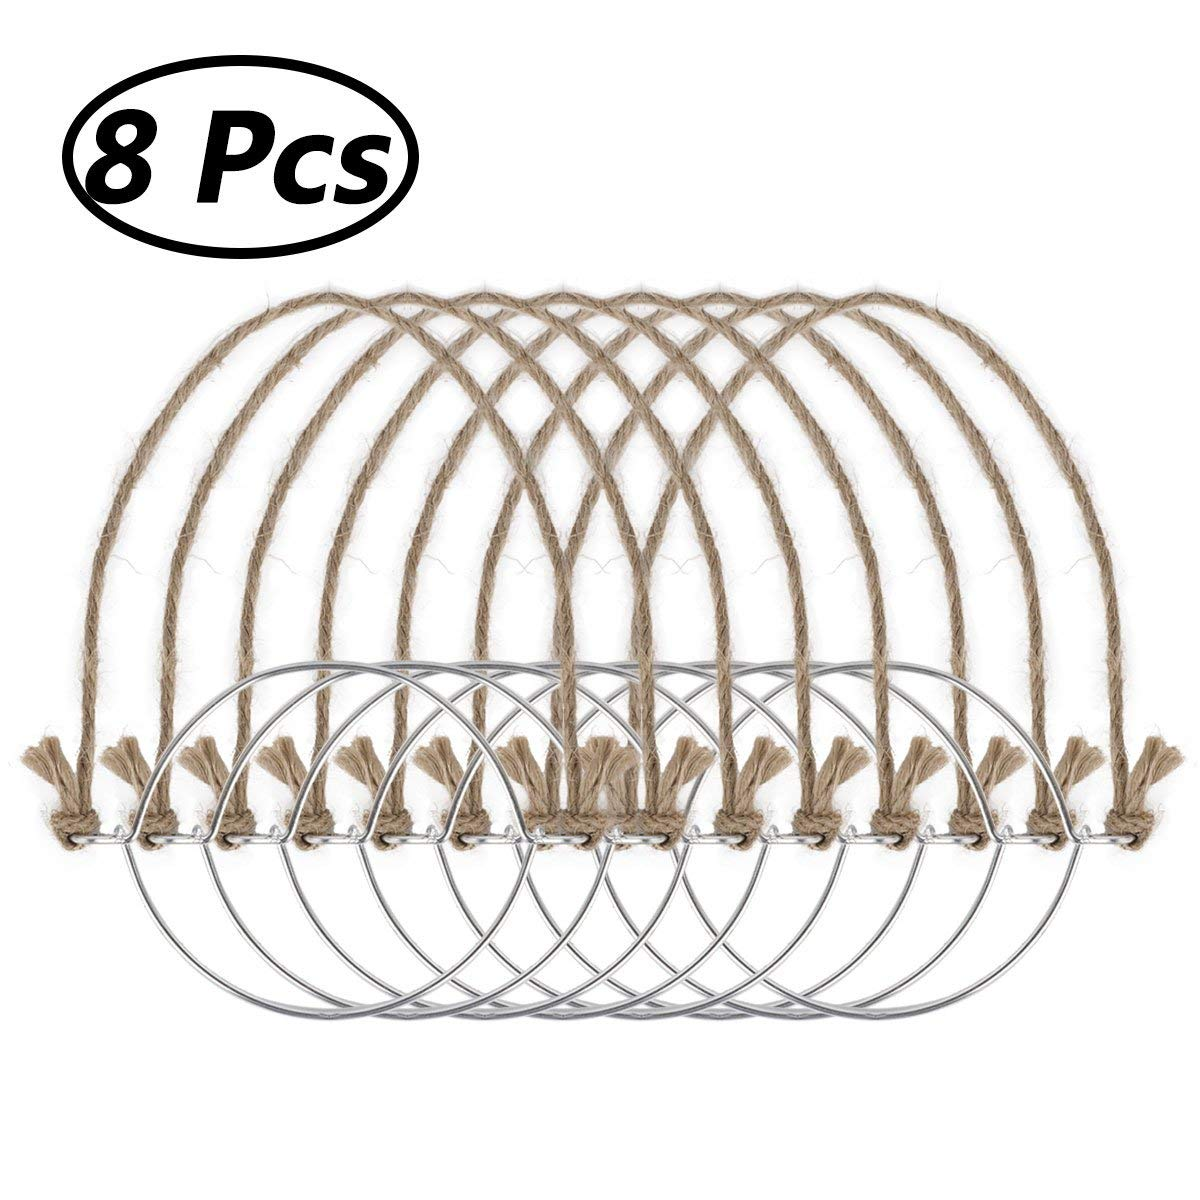 Freebily Stainless Steel Wire Handles for Regular Mouth Mason Ball Canning Jars Hanger Night Lamp Solar Light (8pcs(Burlap))